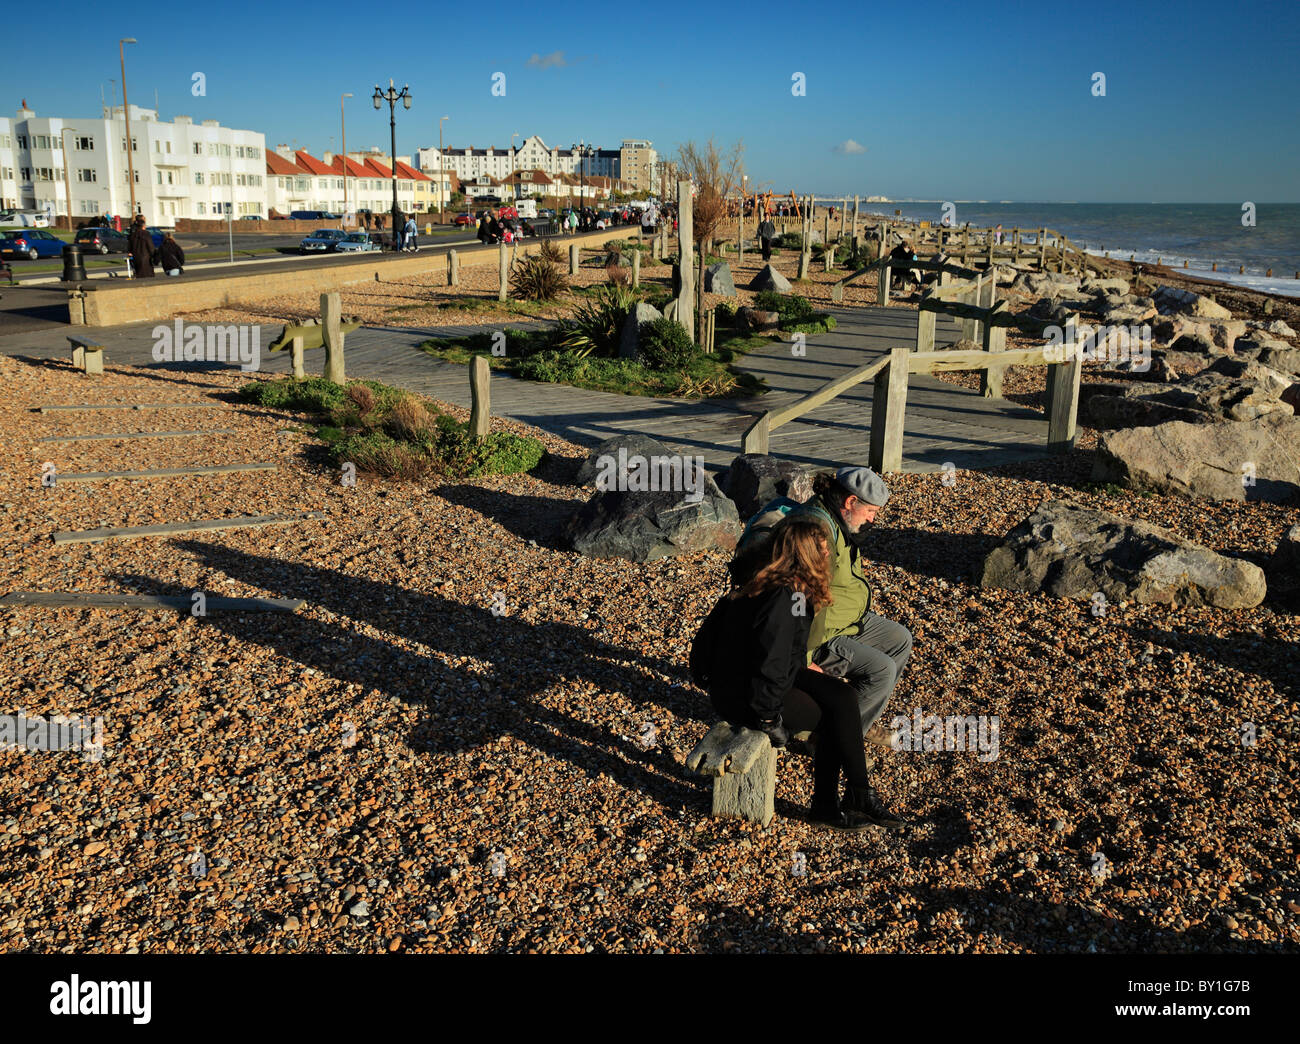 The drought garden Worthing beach. - Stock Image